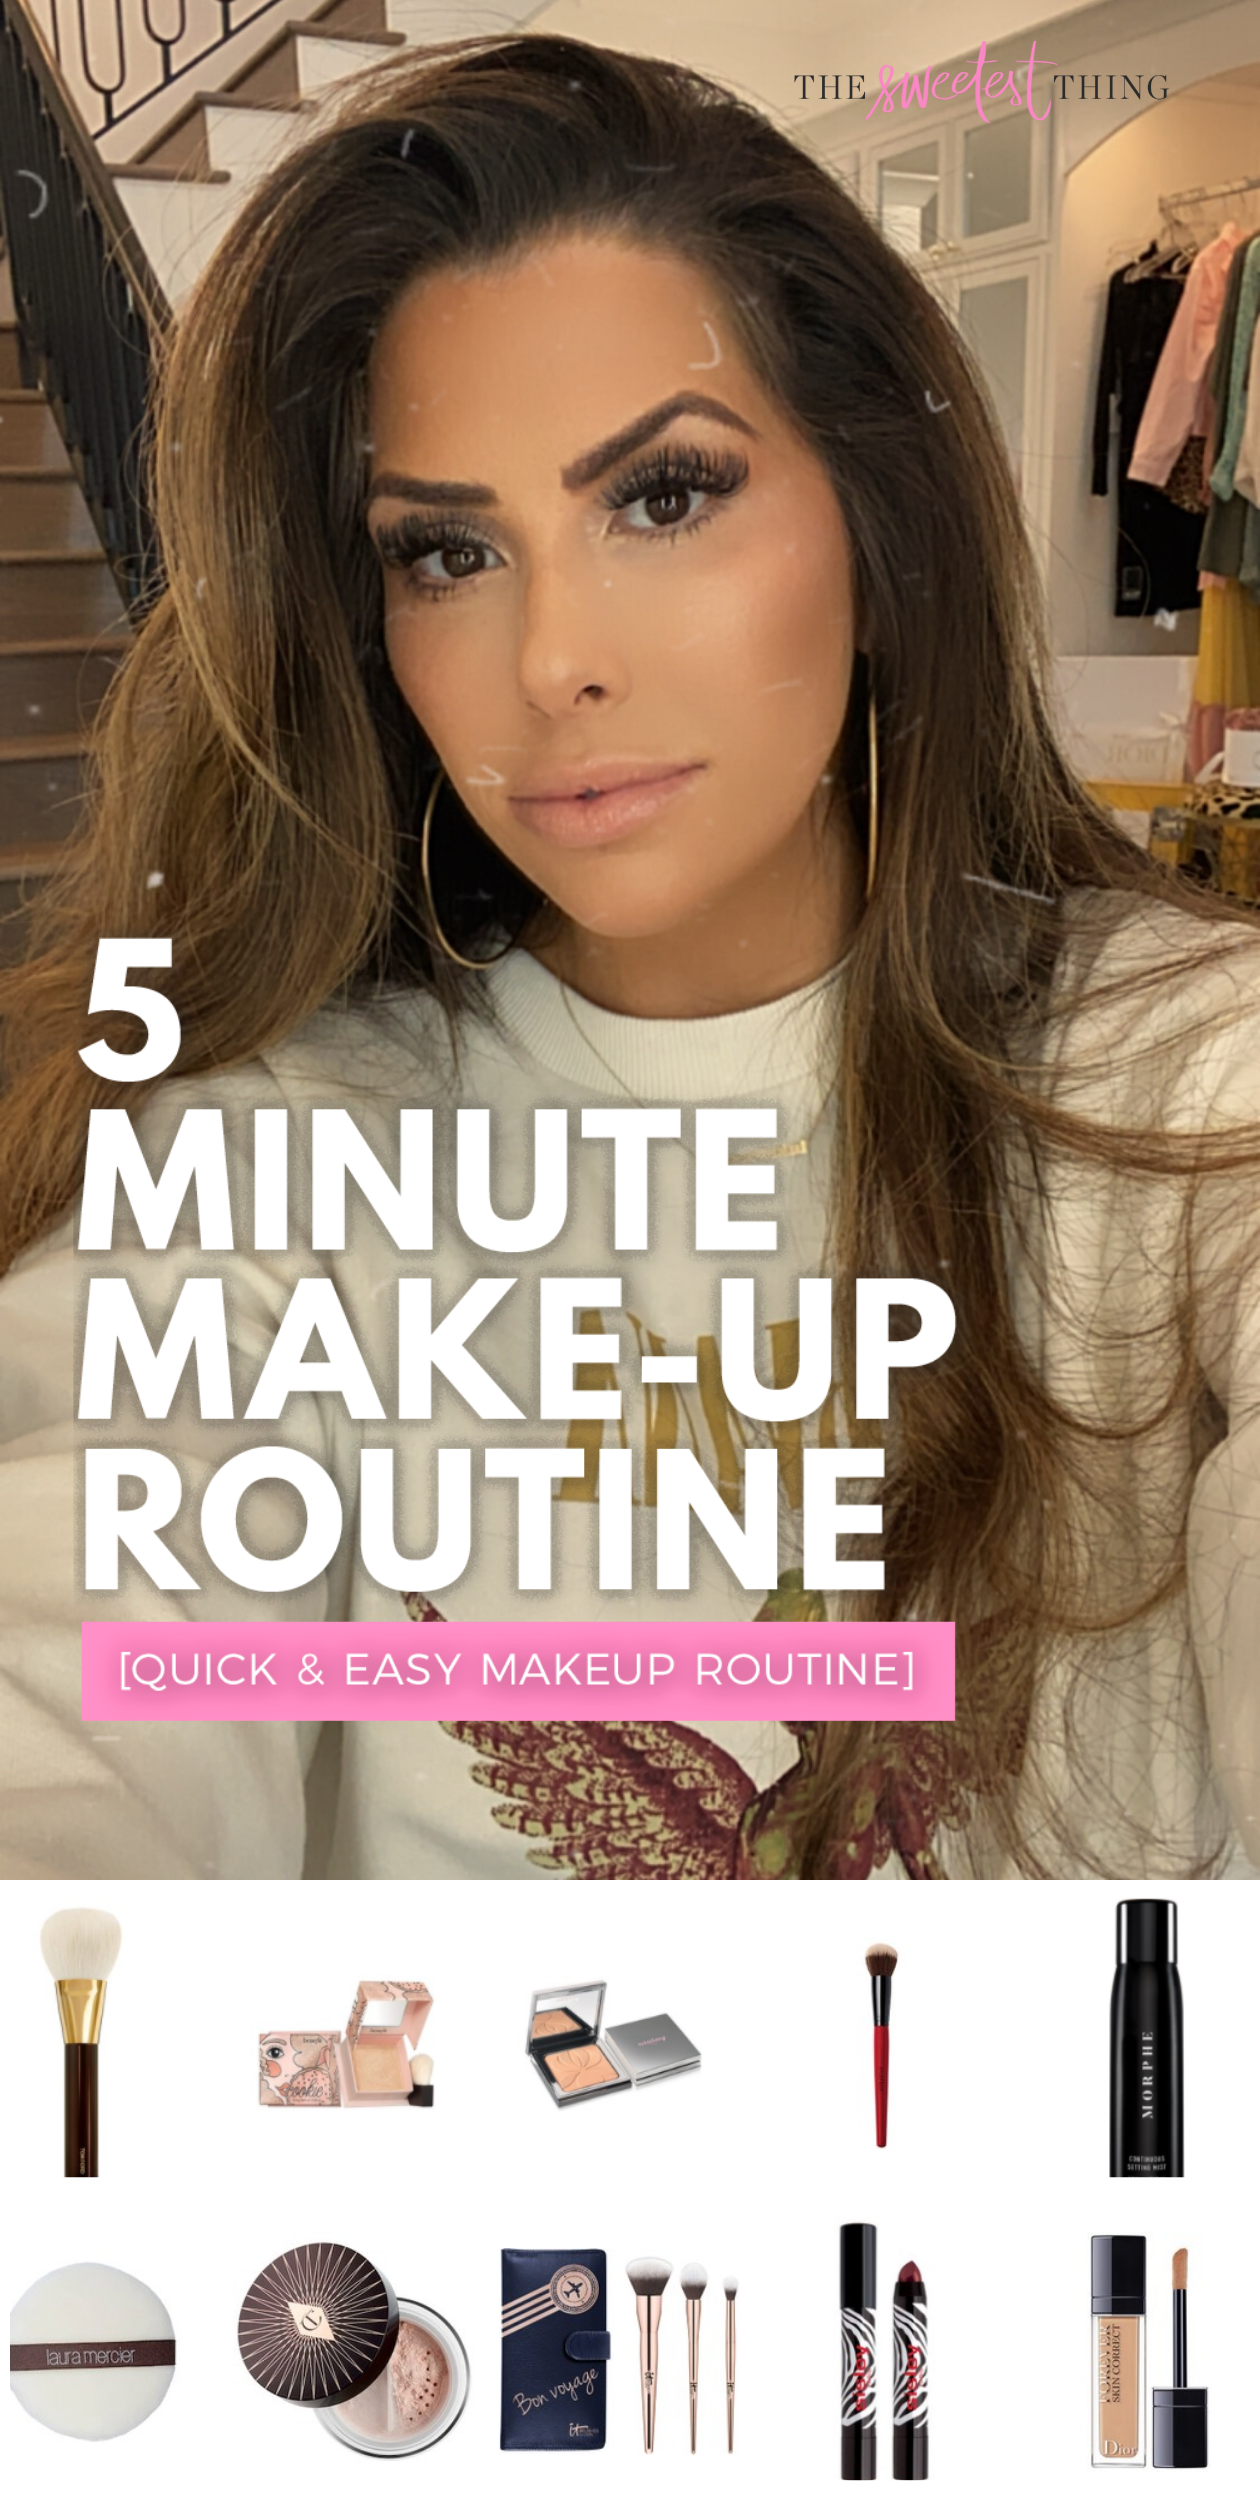 5 Minute Makeup Routine US beauty The Sweetest Thing